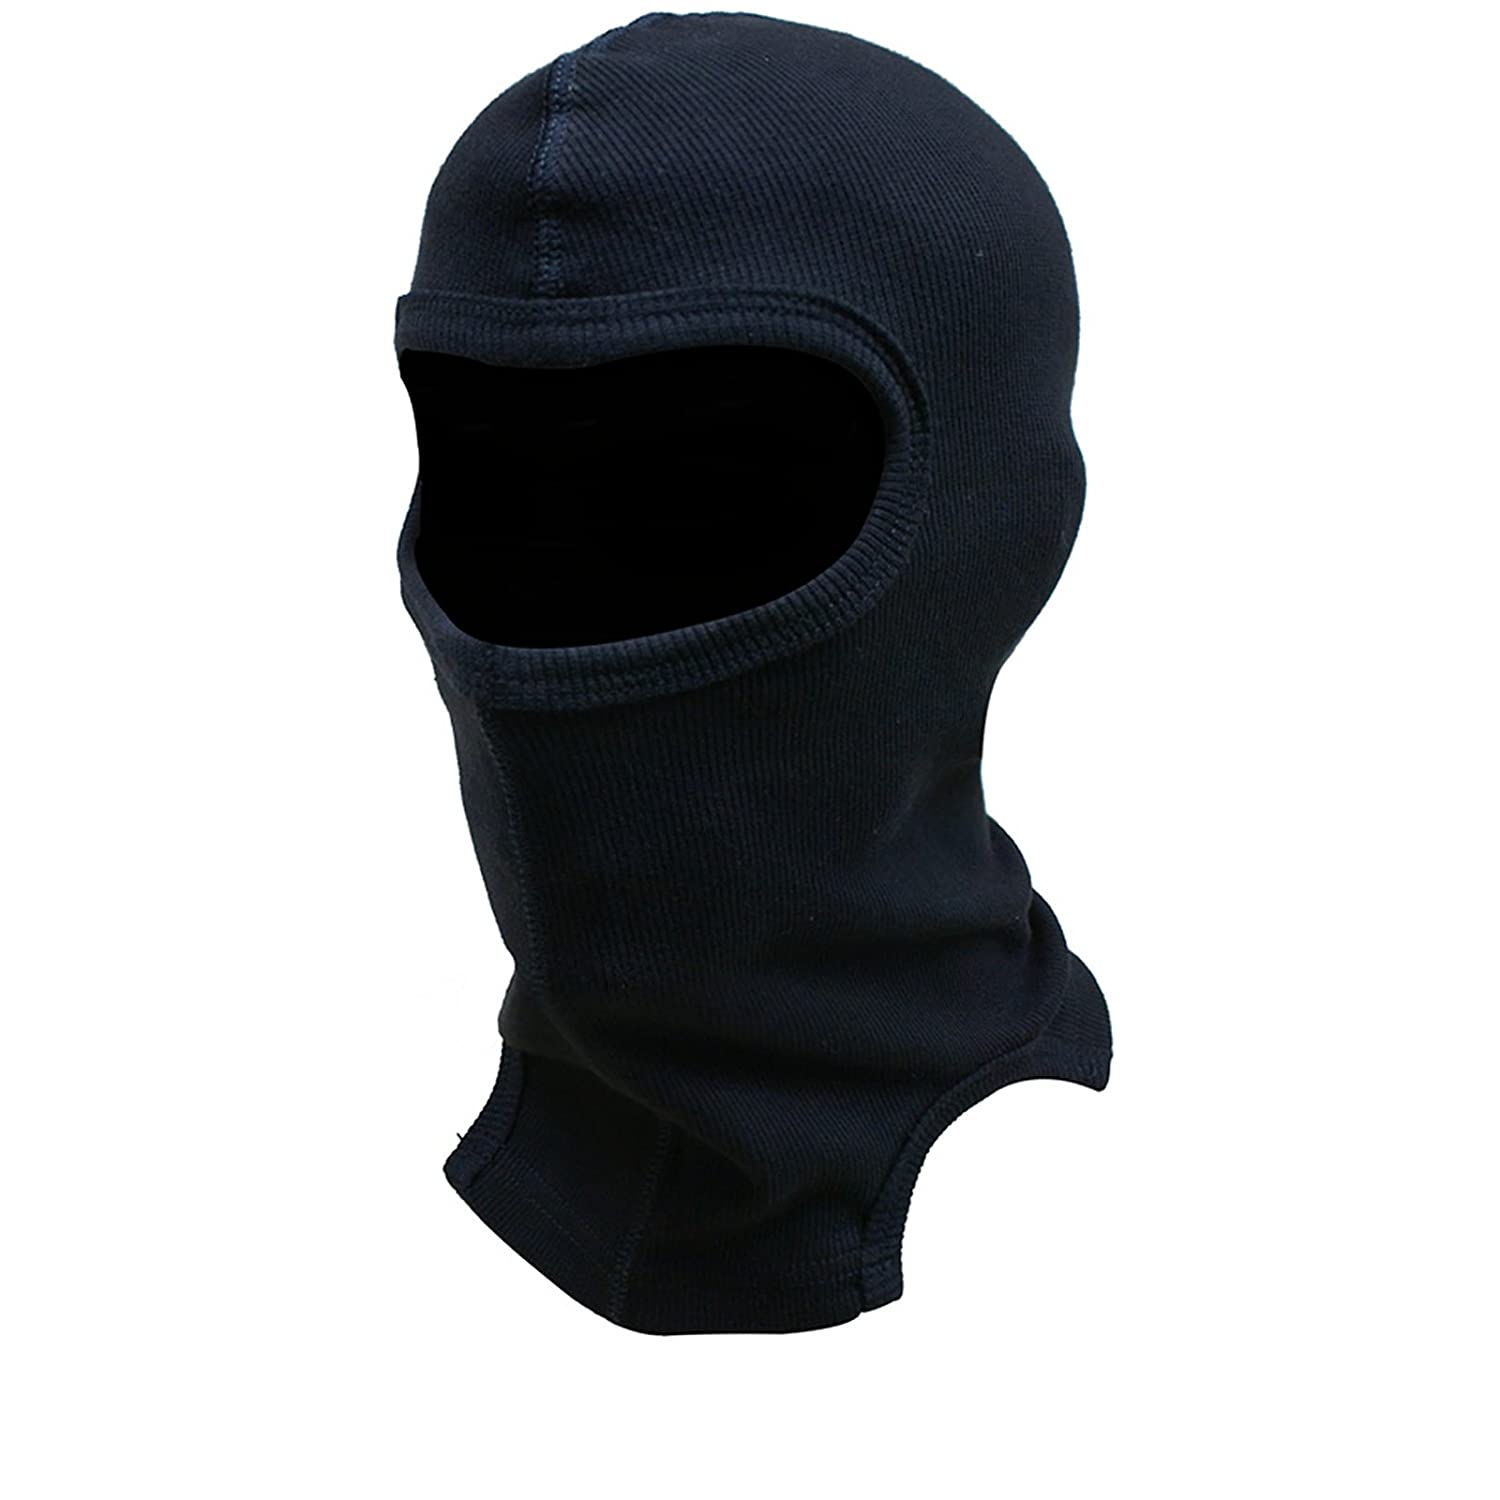 5004 - Black Thermal Motorcycle Balaclava Black Brand Motorcycle Clothing